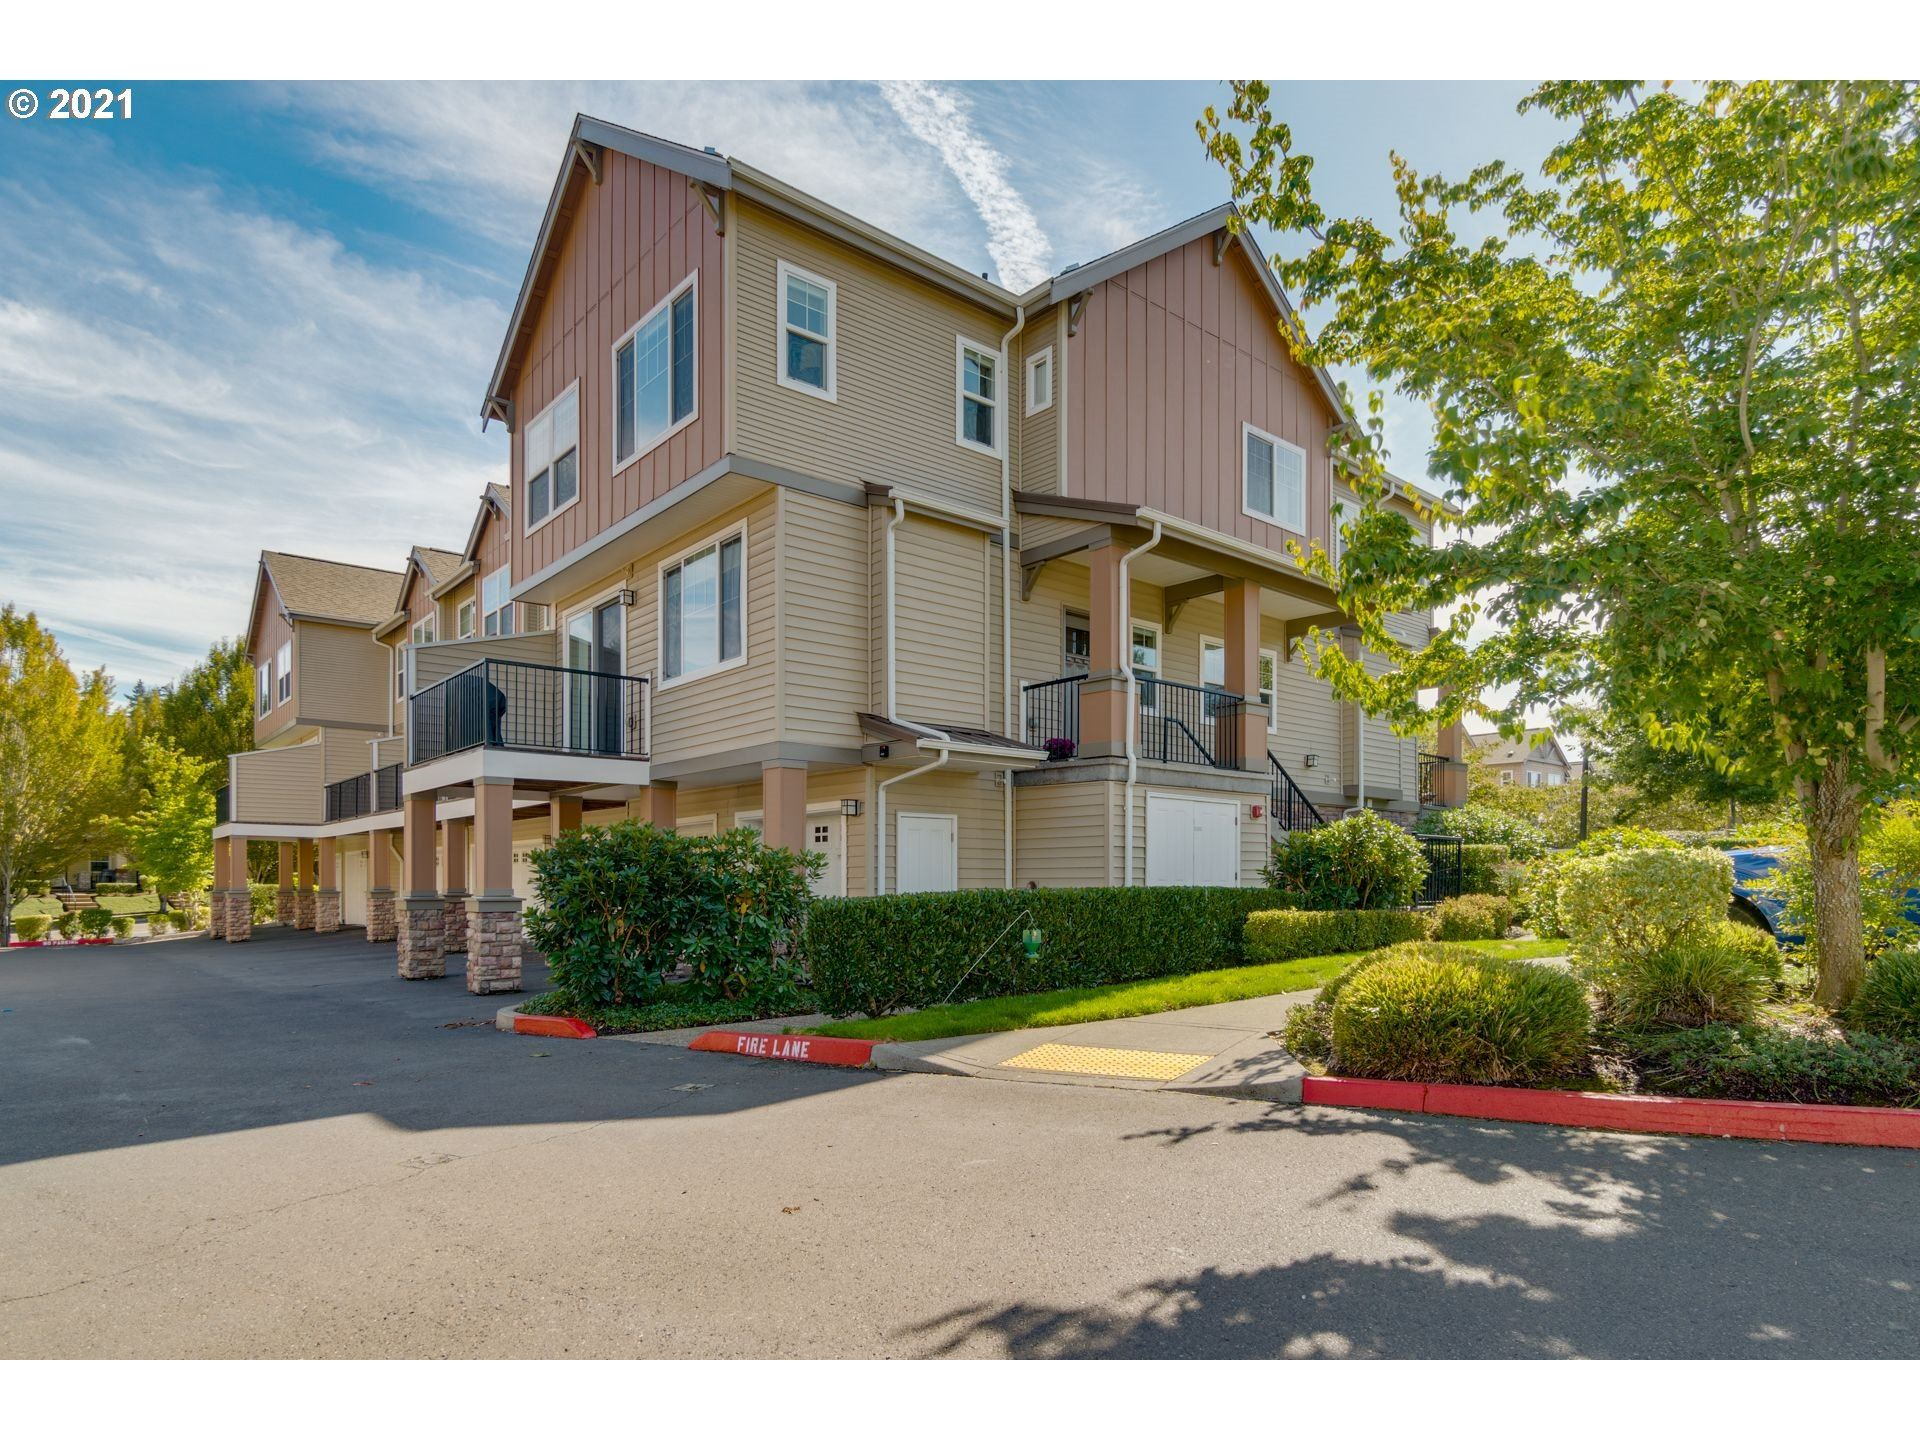 11705 NW WINTER PARK TER #107, Portland, OR 97229 - MLS#: 21495504